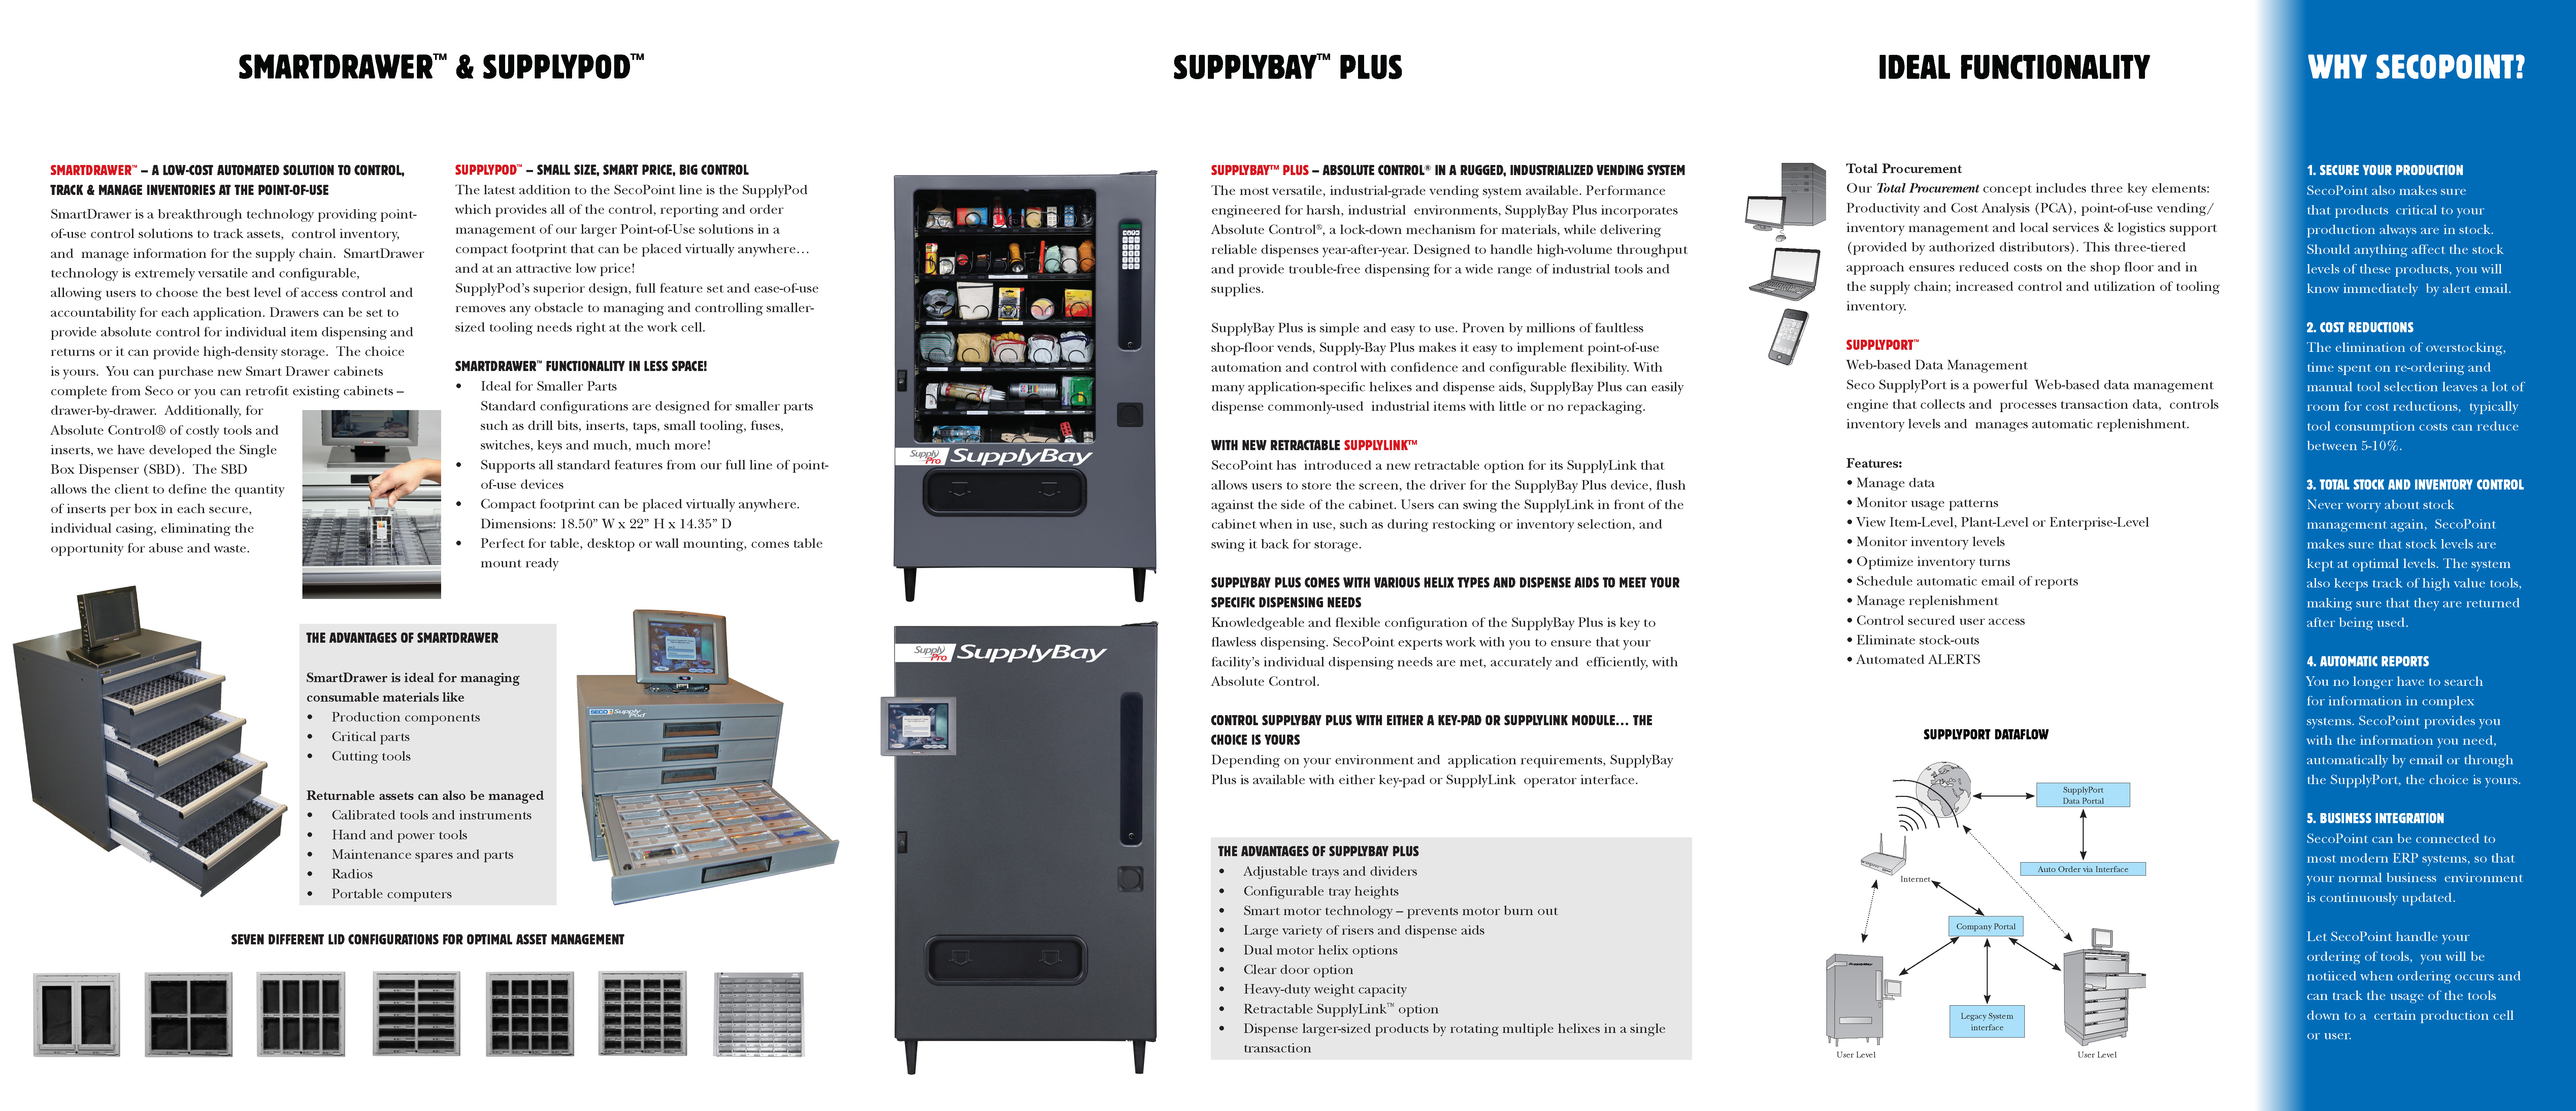 Secopoint_Page_1